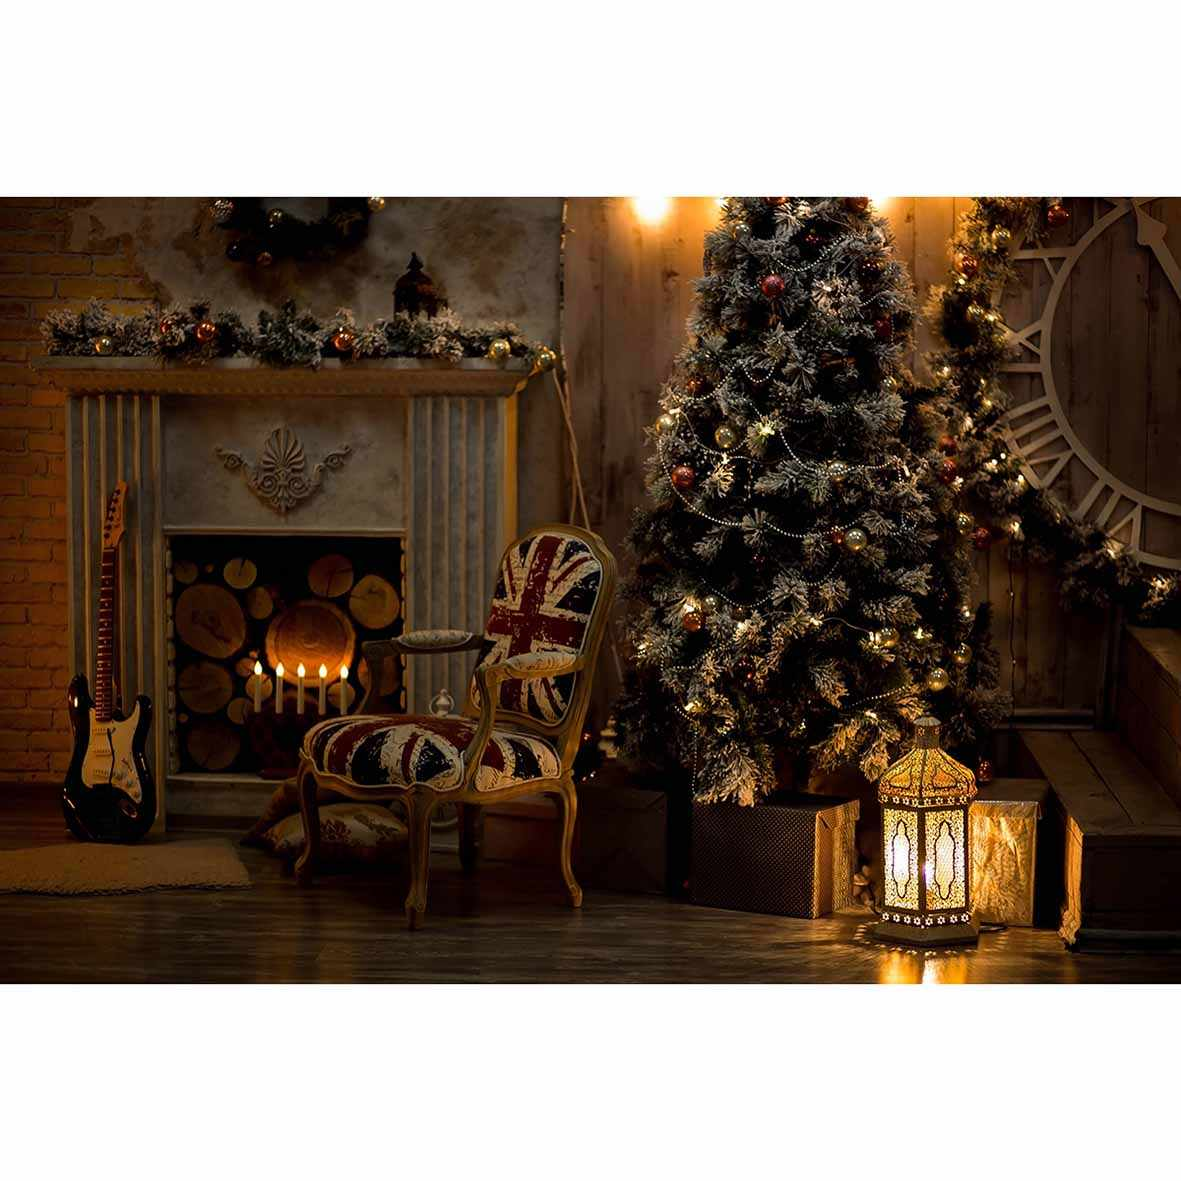 Yeele 10x8ft Christmas Photography Backdrop Abstract Bokeh Lights Background Xmas Room Decoration Kids Adult Portrait Photo Booth Photoshoot Props Wallpaper